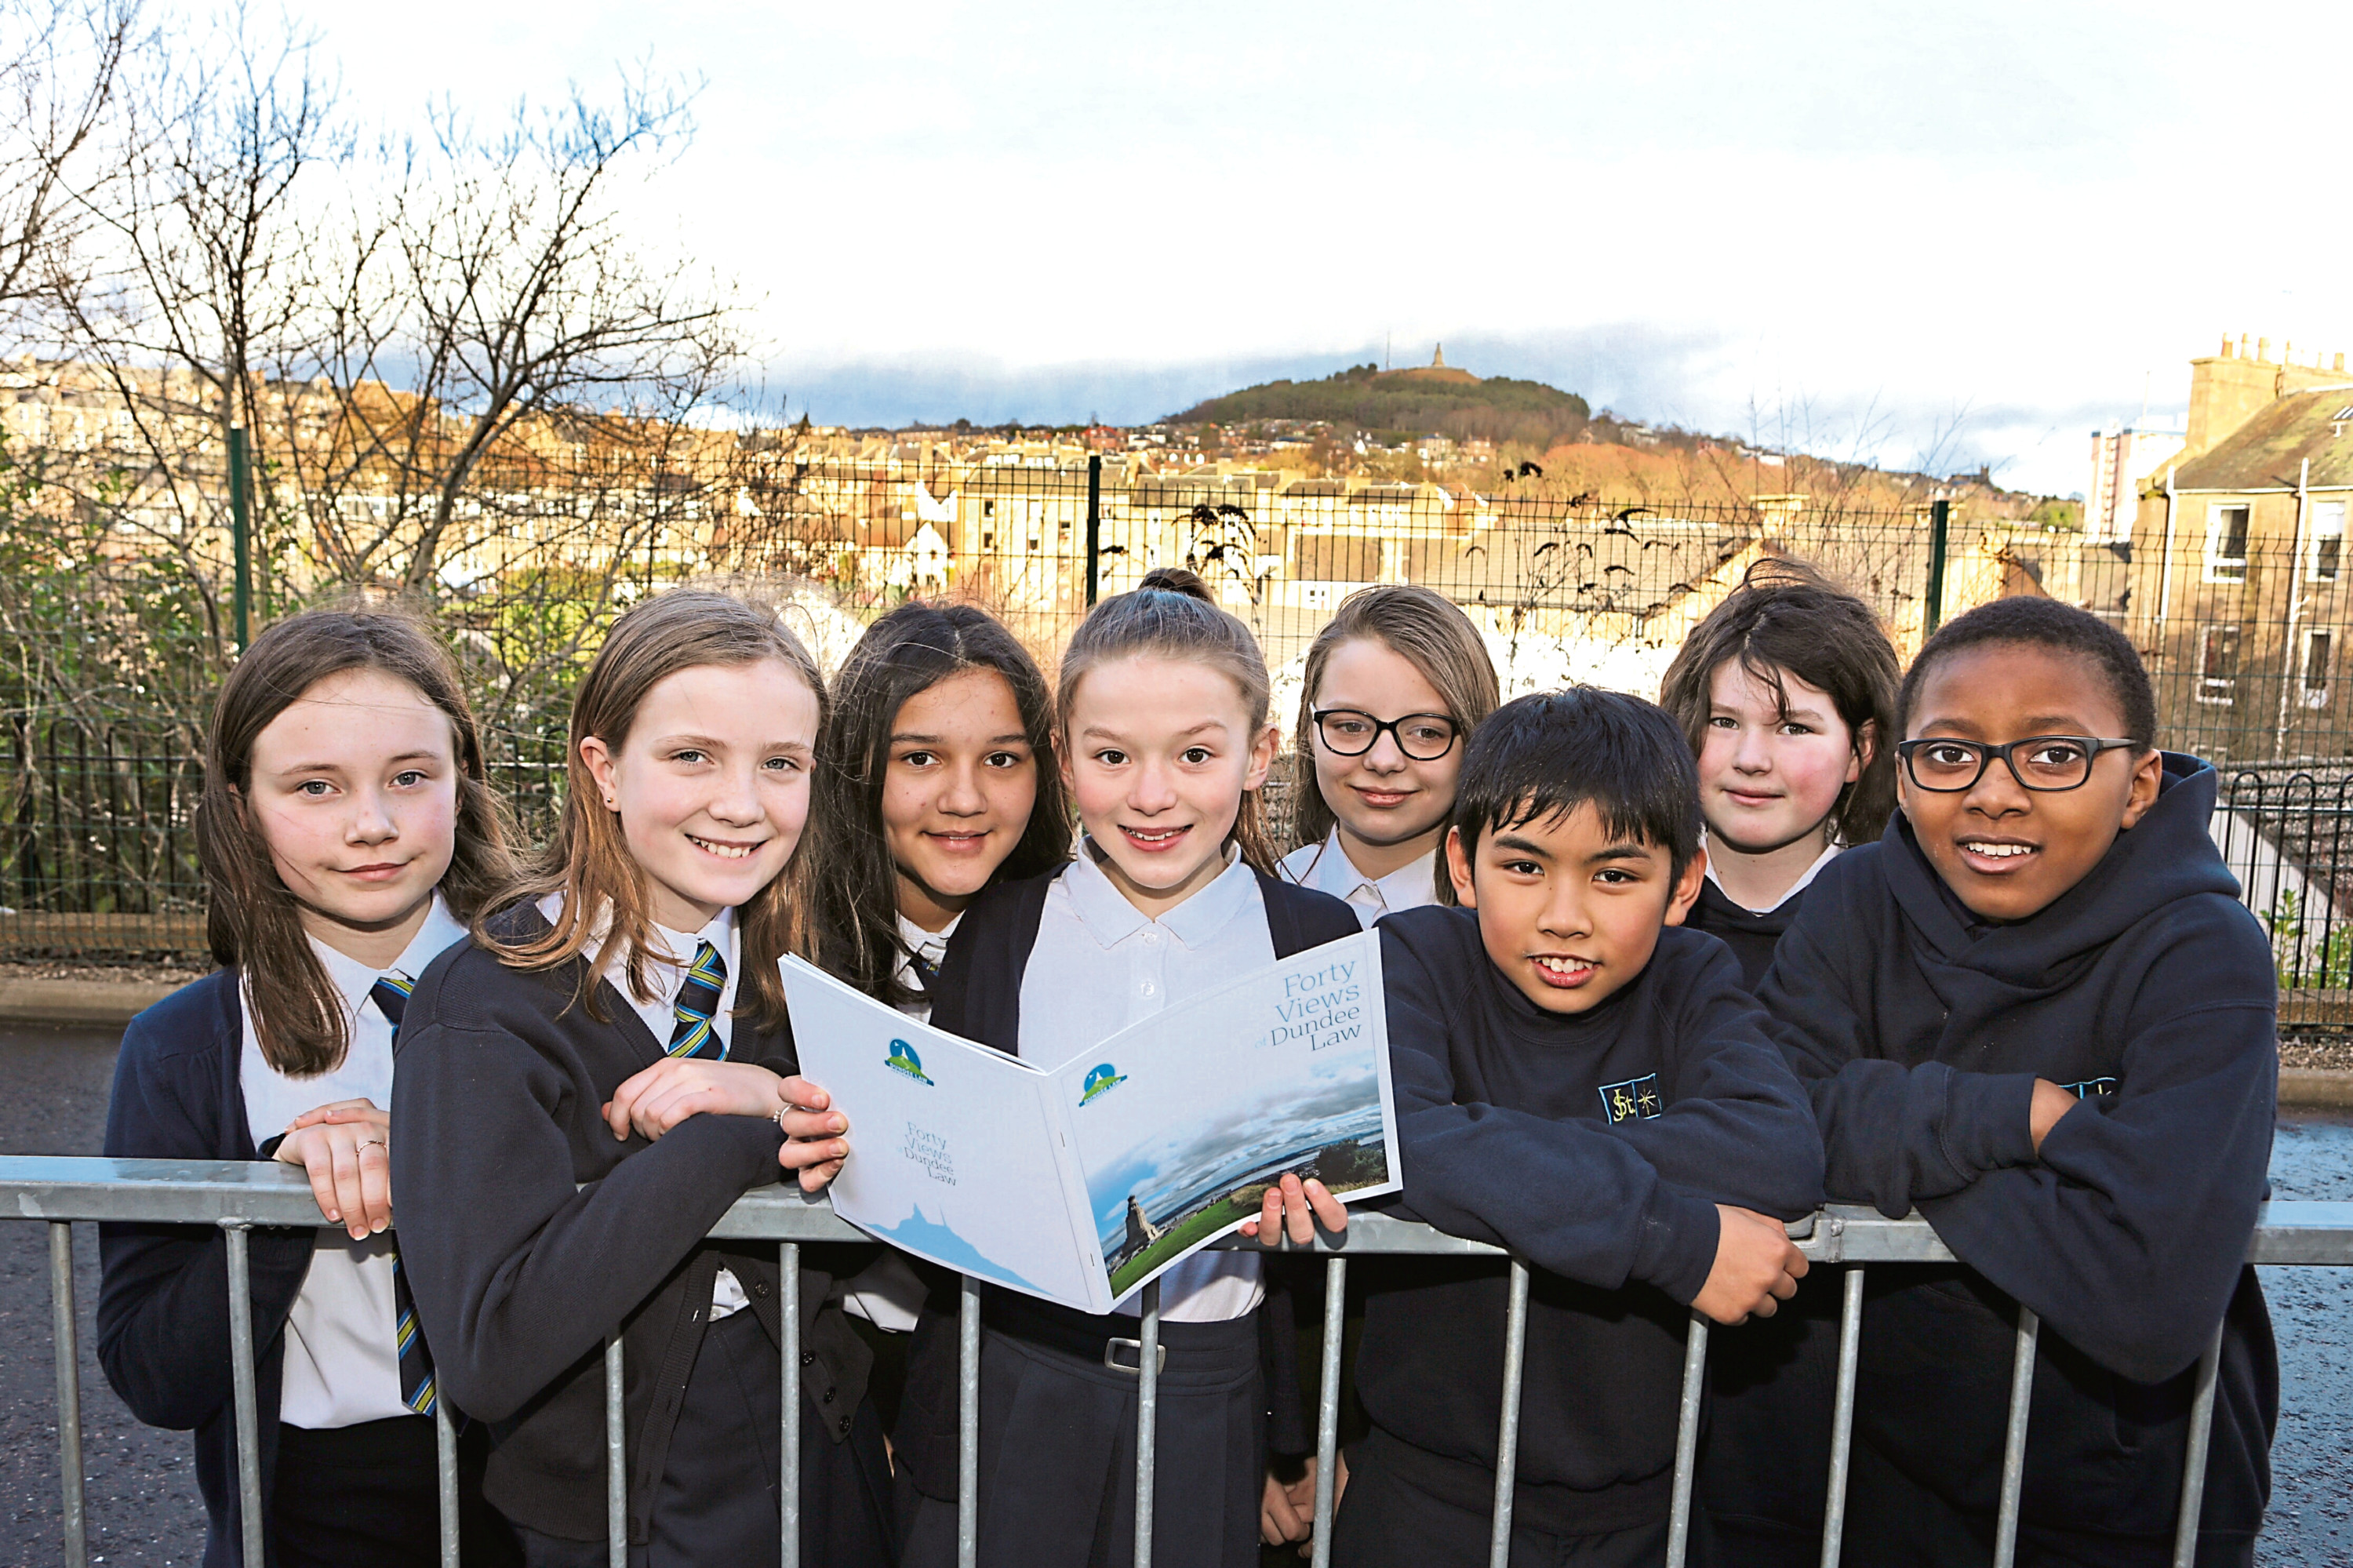 Picture shows St Joseph's Primary pupils, from left: Abby Brown, Katrine Gangloo, Natalia Labuda, Beth Petrie, Eva Dey, Kurt Noveros, Gabriella Curran and Nathan Emmanuel